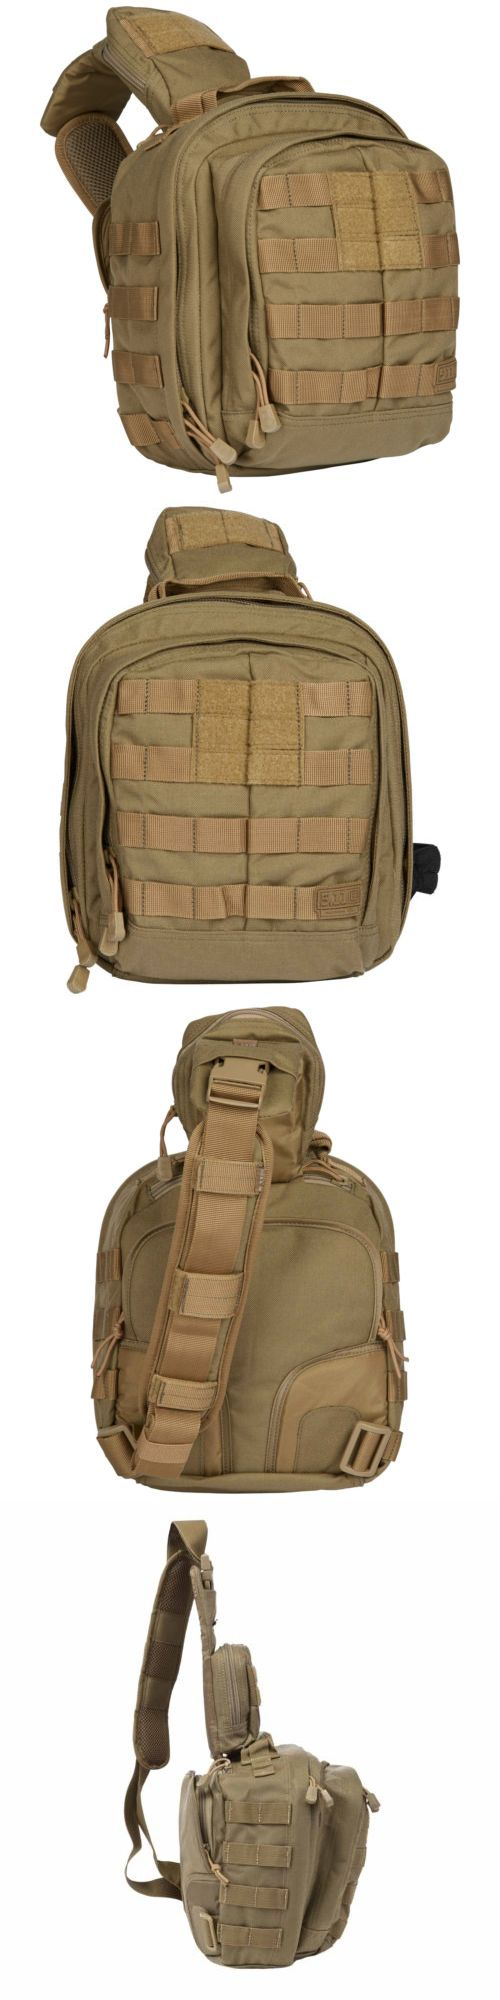 Tactical Bags and Packs 177899: 5.11 Tactical Rush Moab 6 Sling Pack Sandstone Mobile Operation Attachment Bag BUY IT NOW ONLY: $64.5